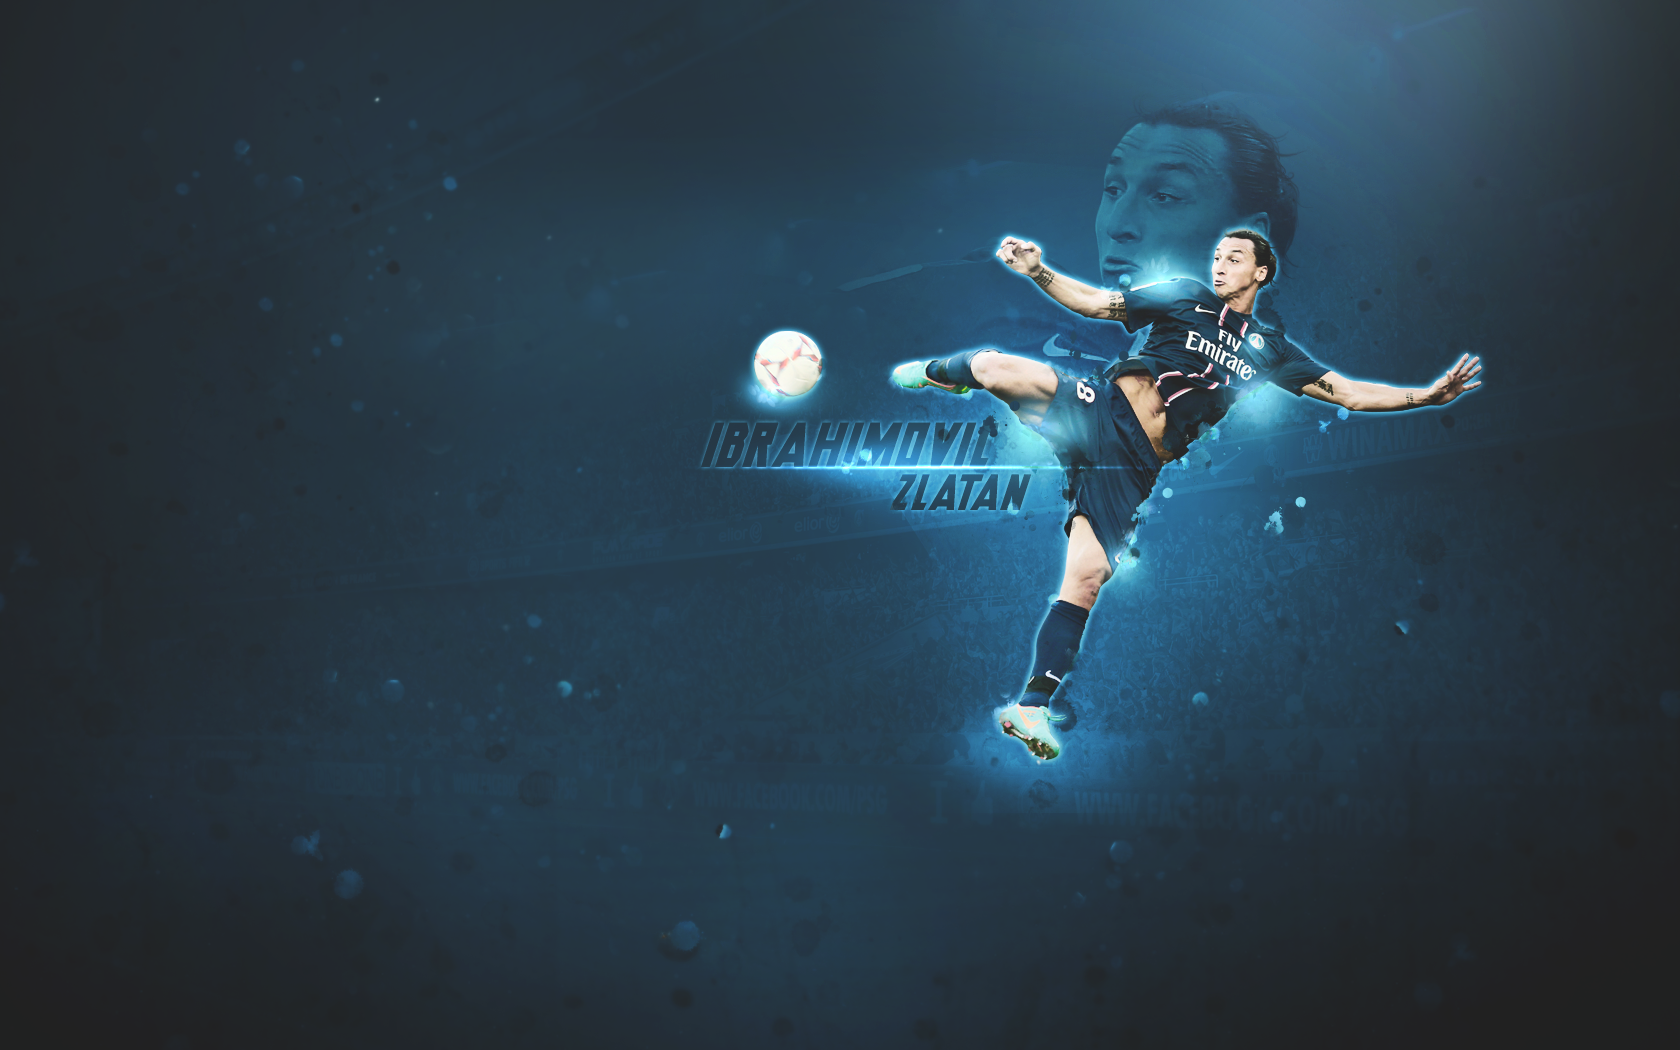 zlatan ibrahimovic wallpaper copy by meesvr3 on deviantart